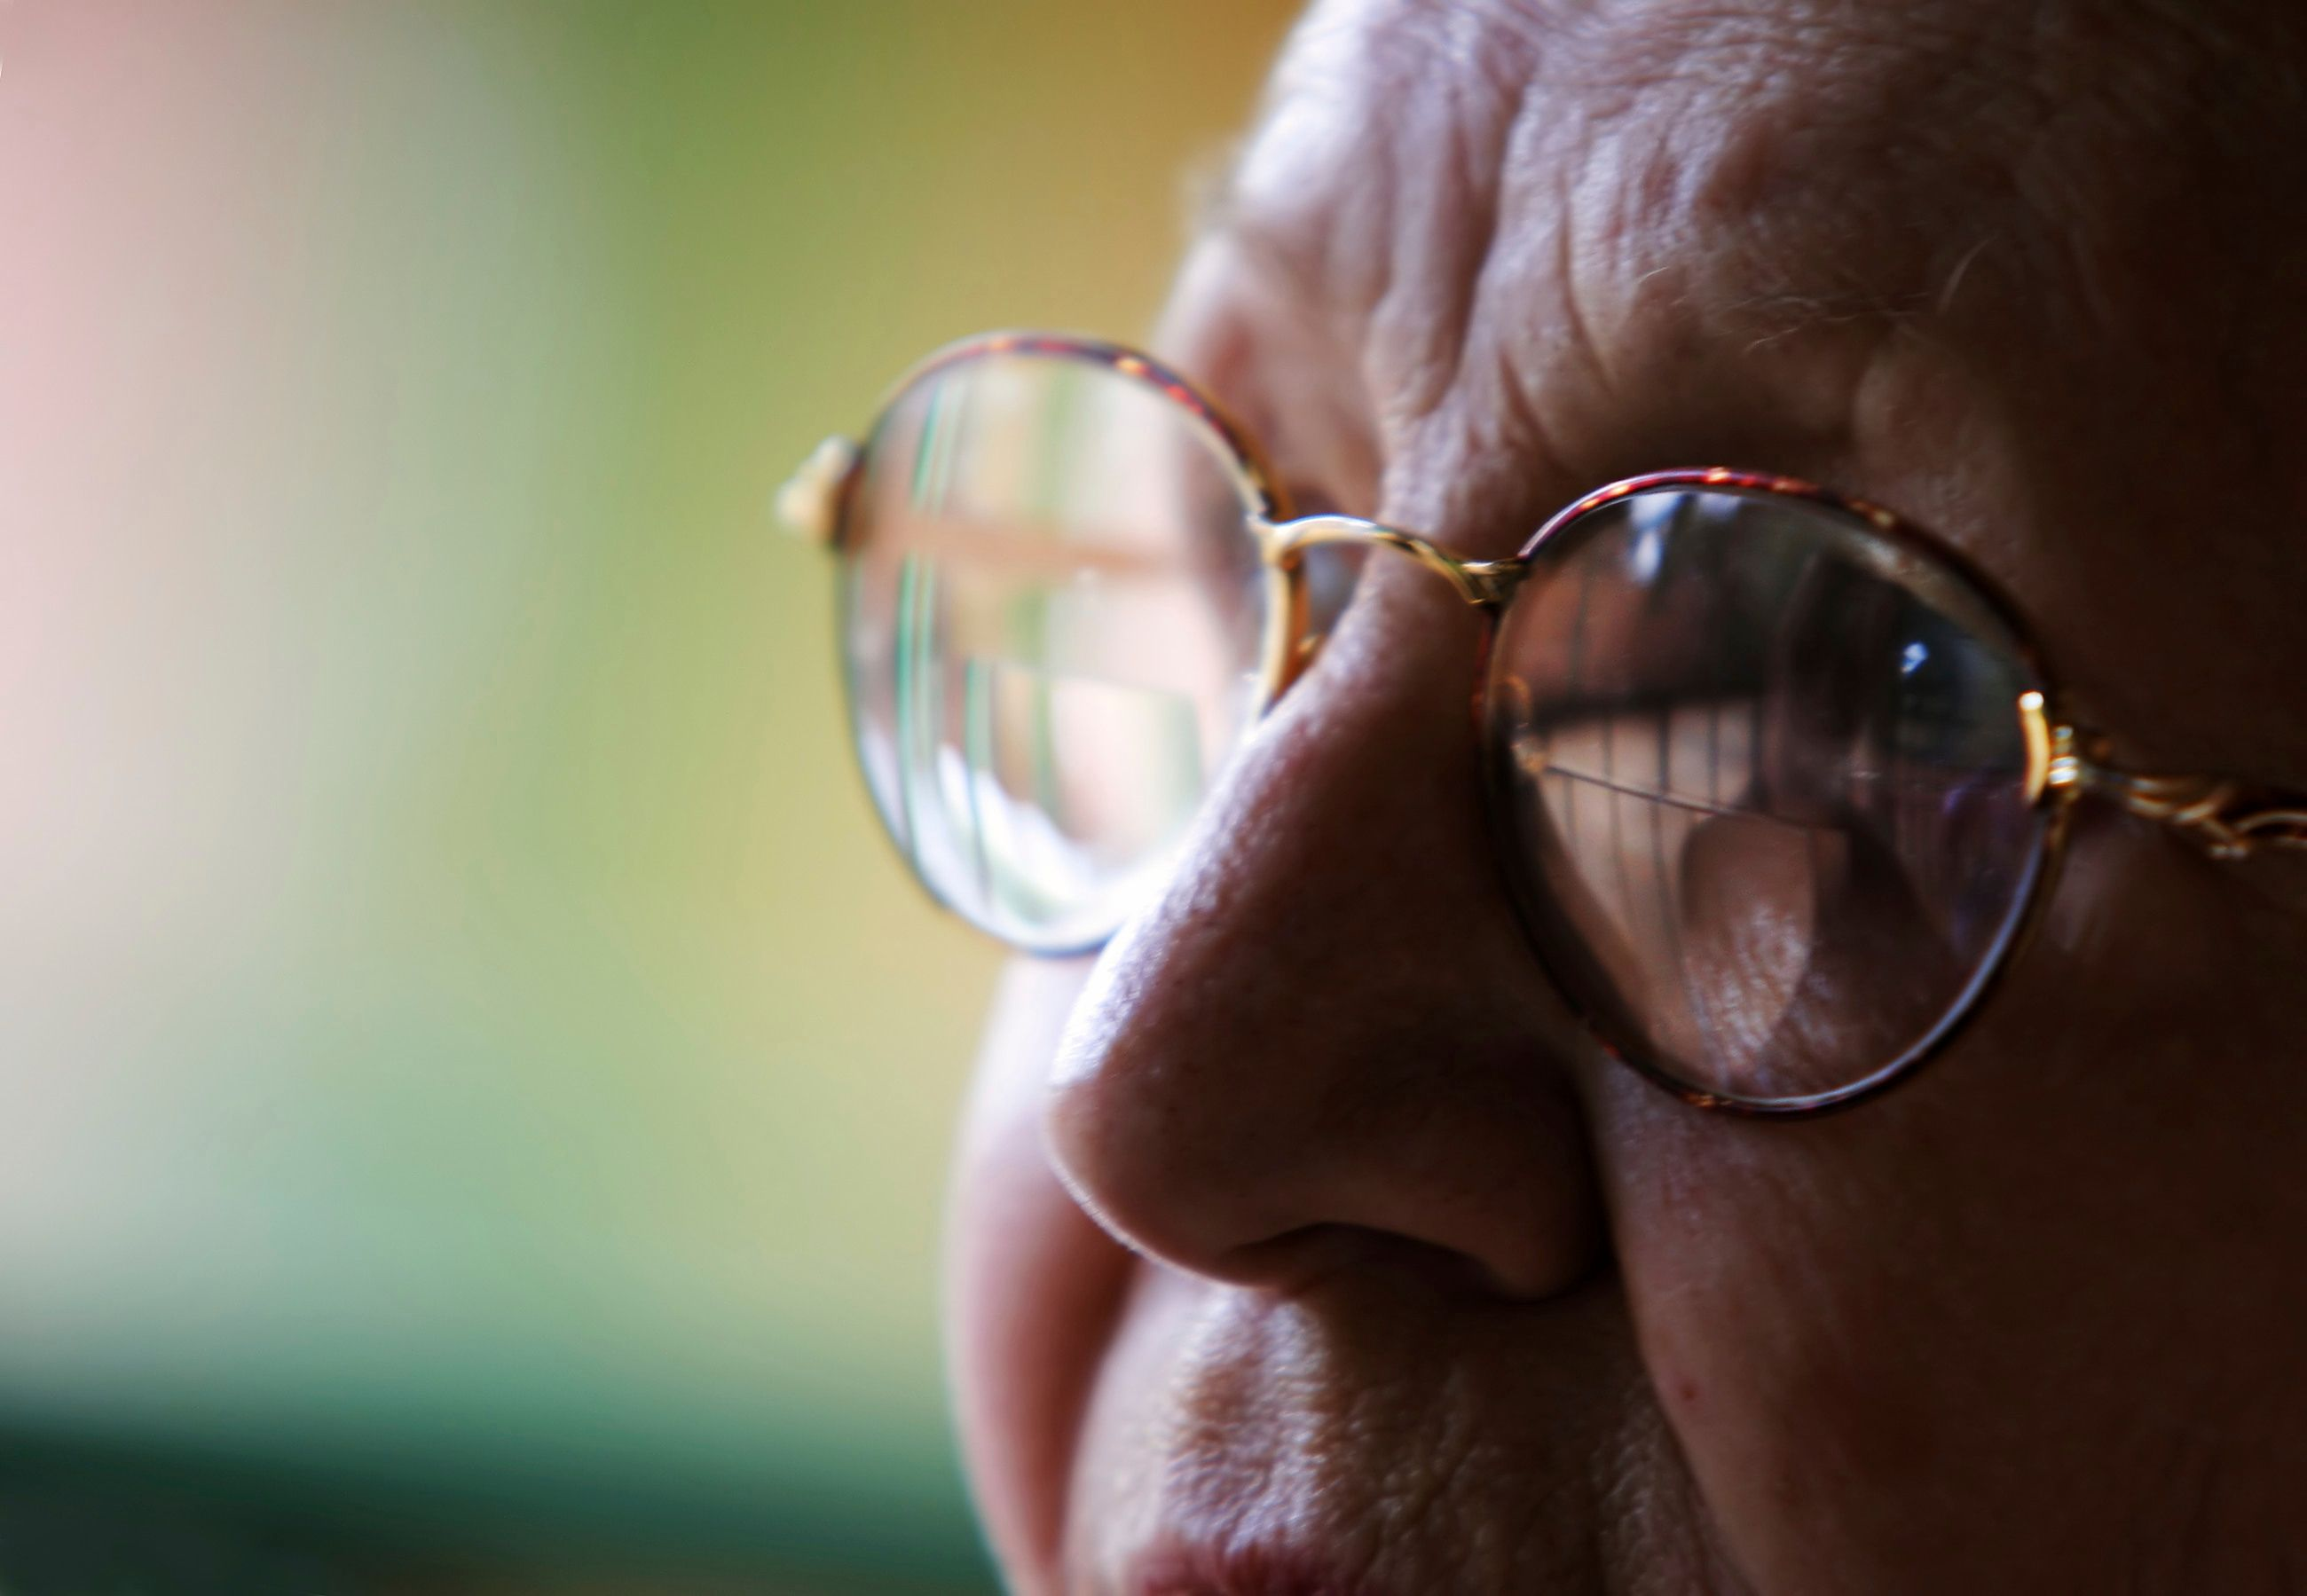 How Can Older Adults Protect Their Vision?